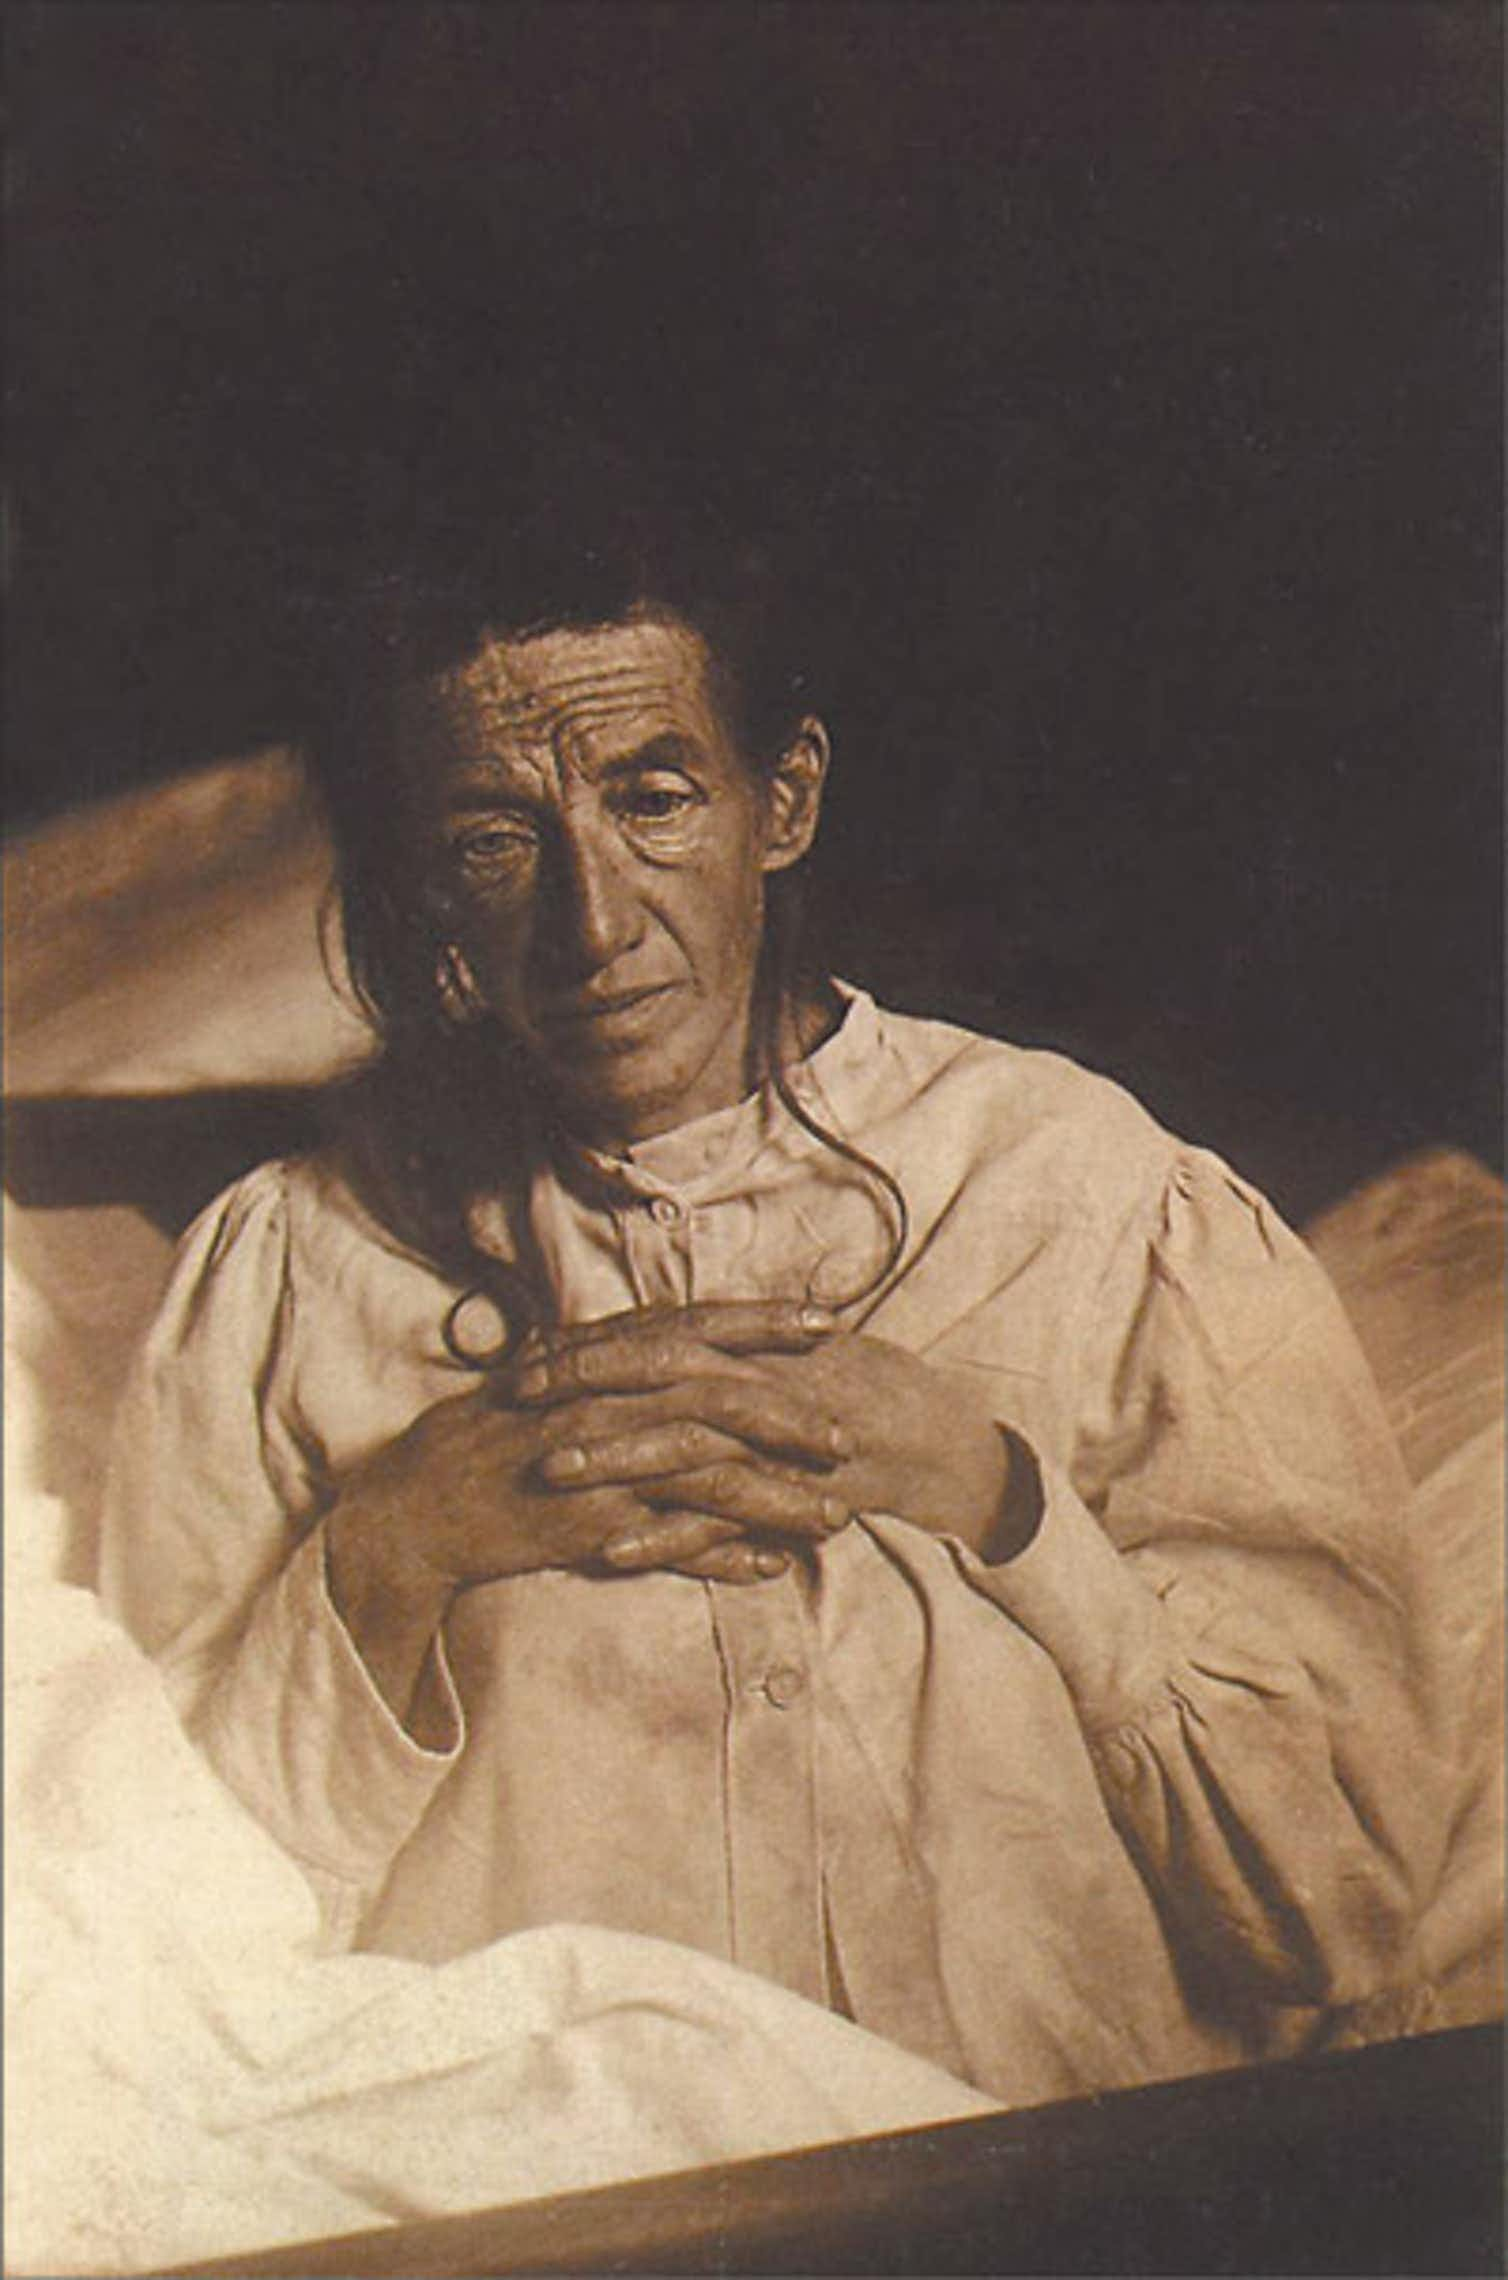 Auguste Deter, Alois Alzheimer's patient in November 1901, first described patient with Alzheimer's Disease.